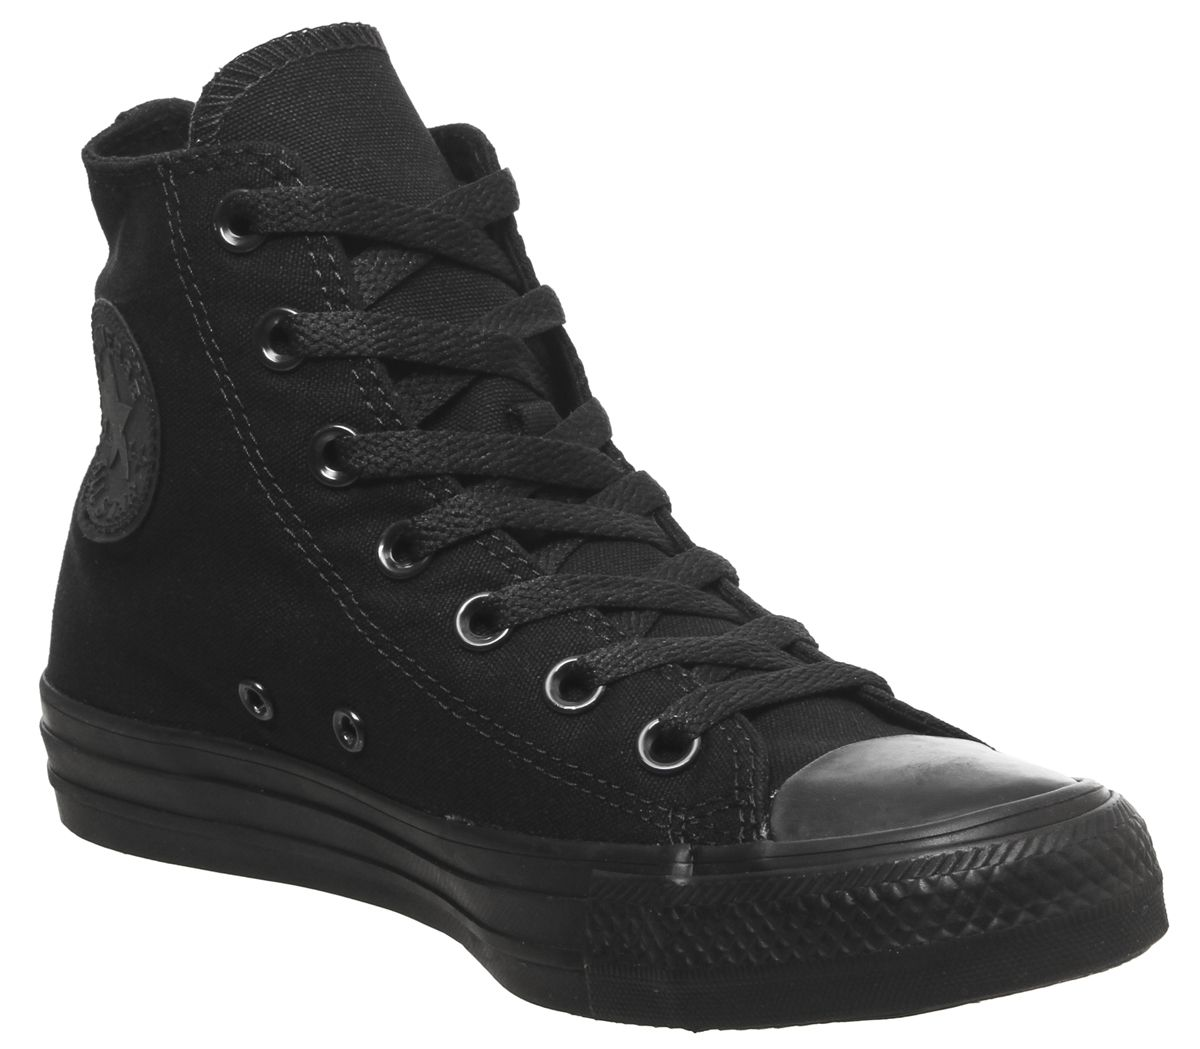 5576a27eb8e10a Converse All Star Hi Black Mono Canvas - Unisex Sports